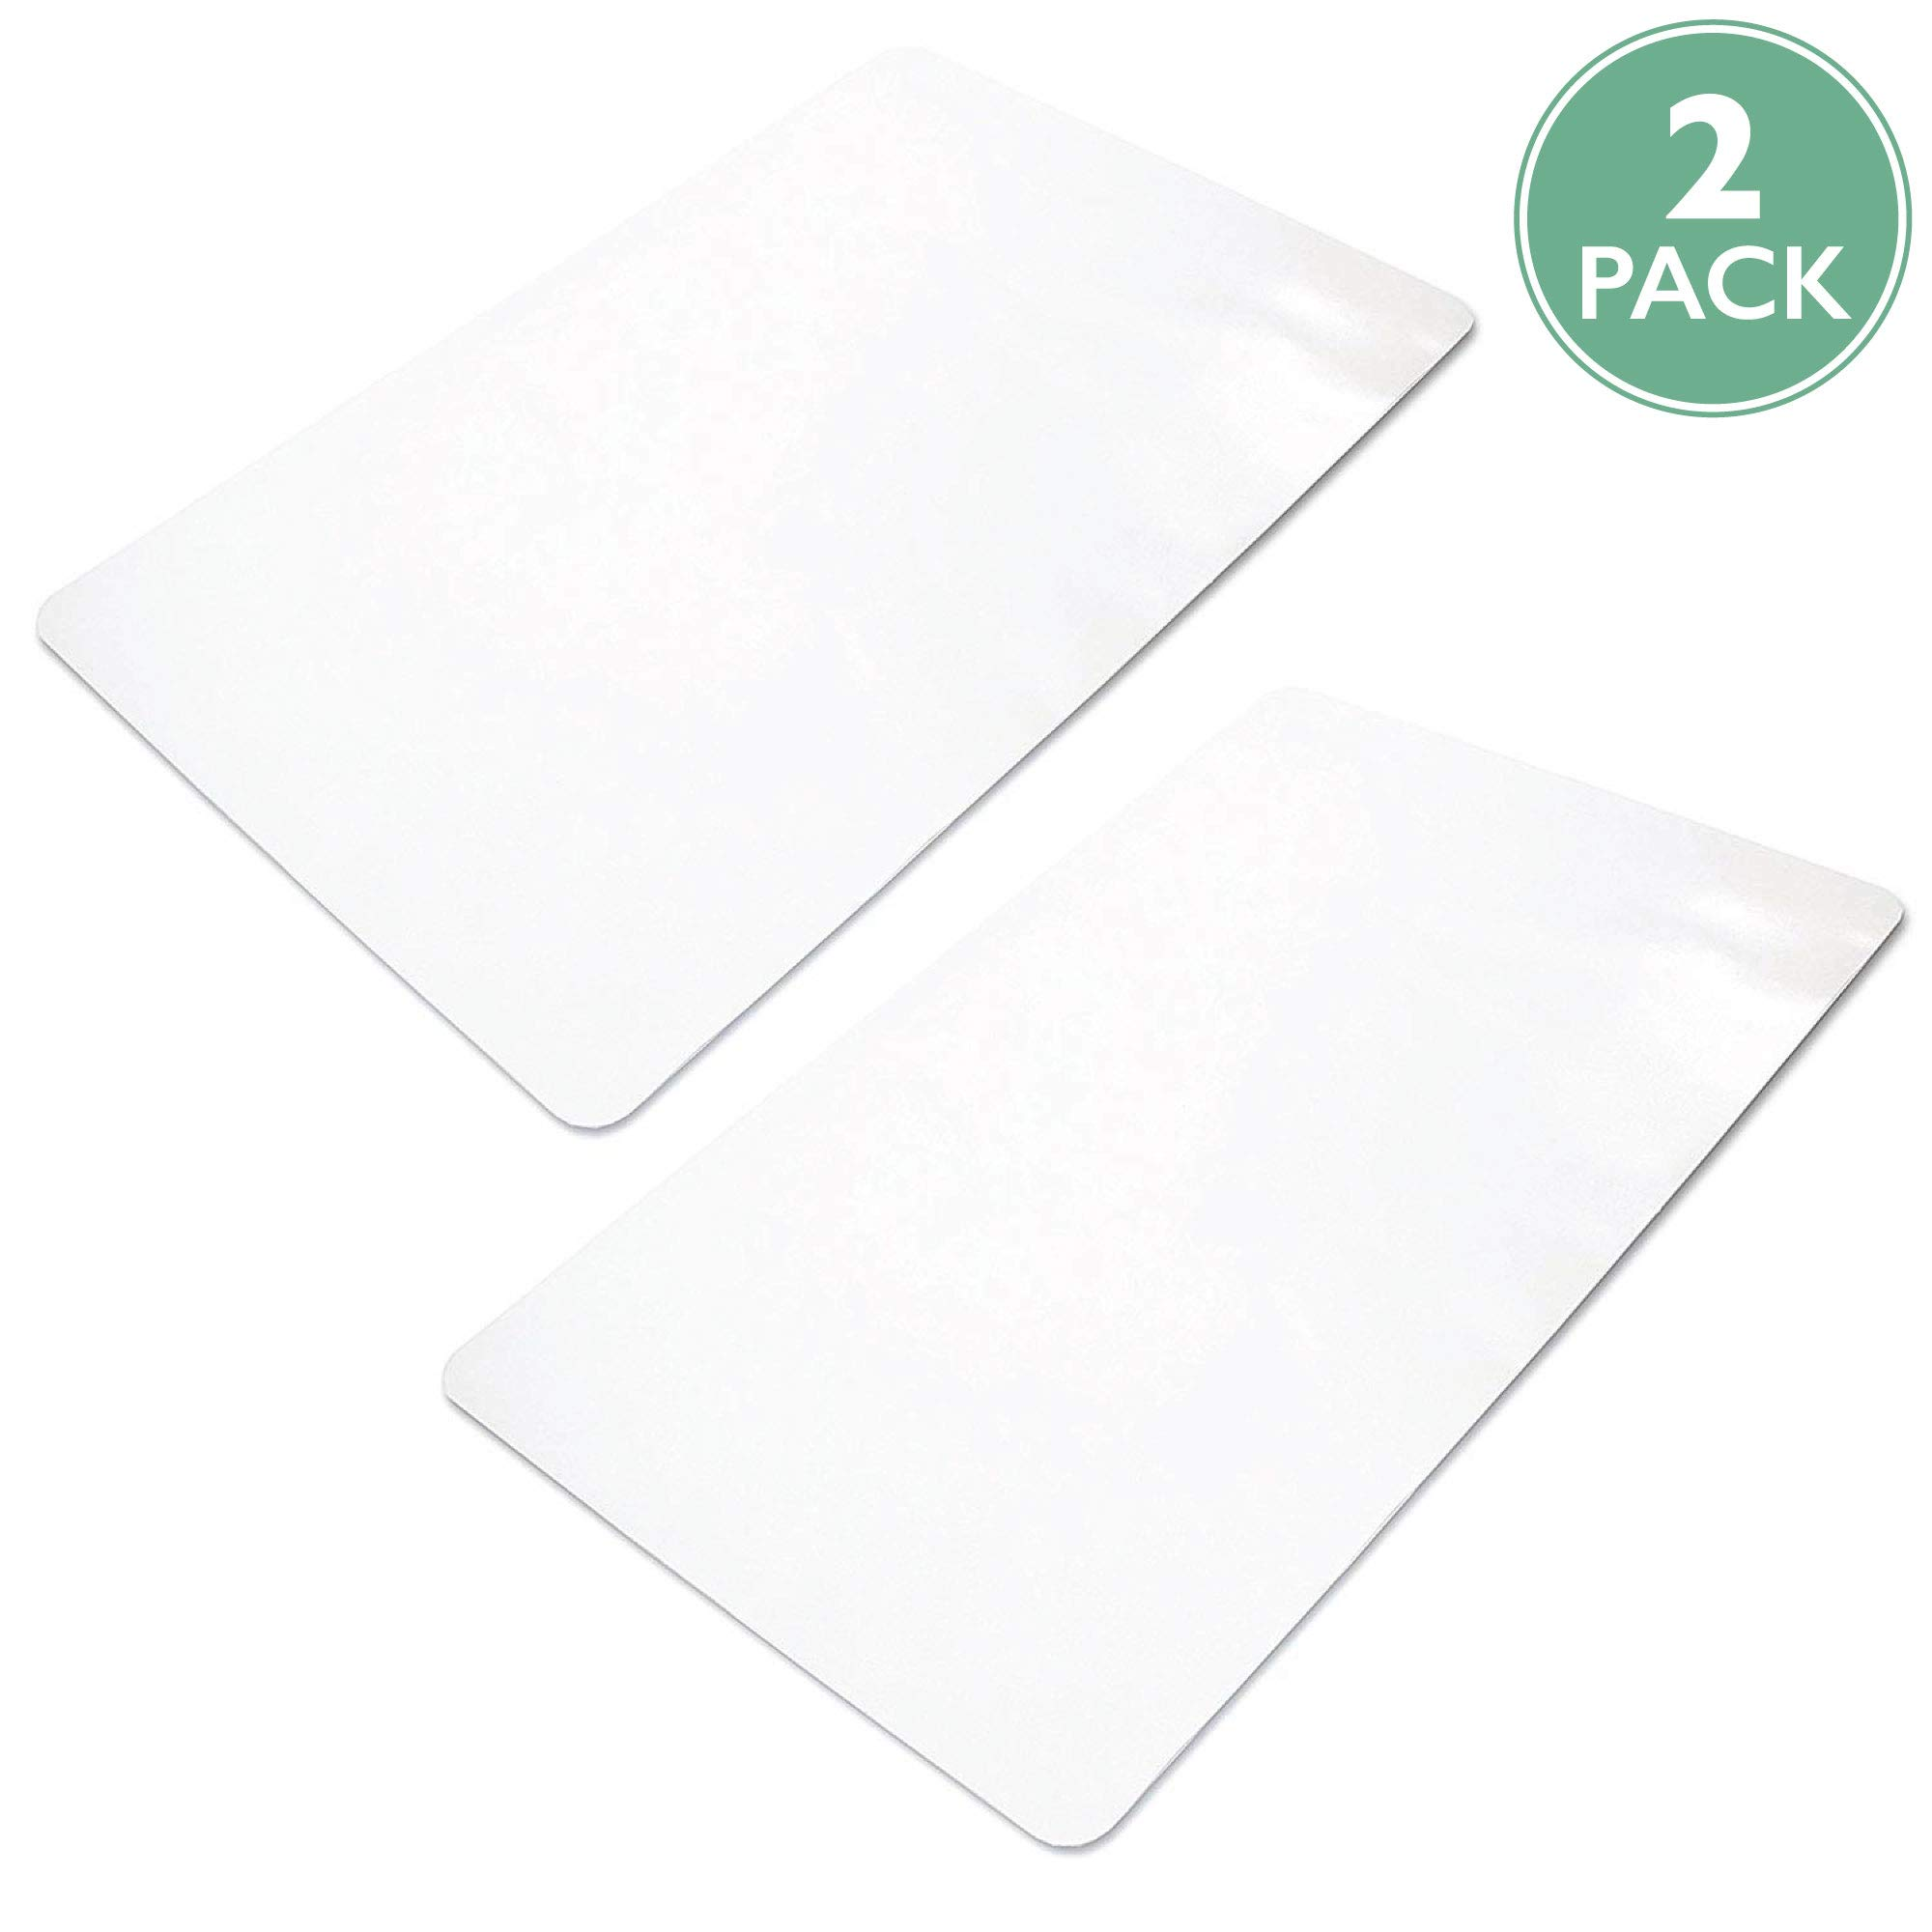 2 Pack of Office Chair Mats for Hardwood Floors 36 x 48 - Floor Mat for Desk Chairs by Ilyapa